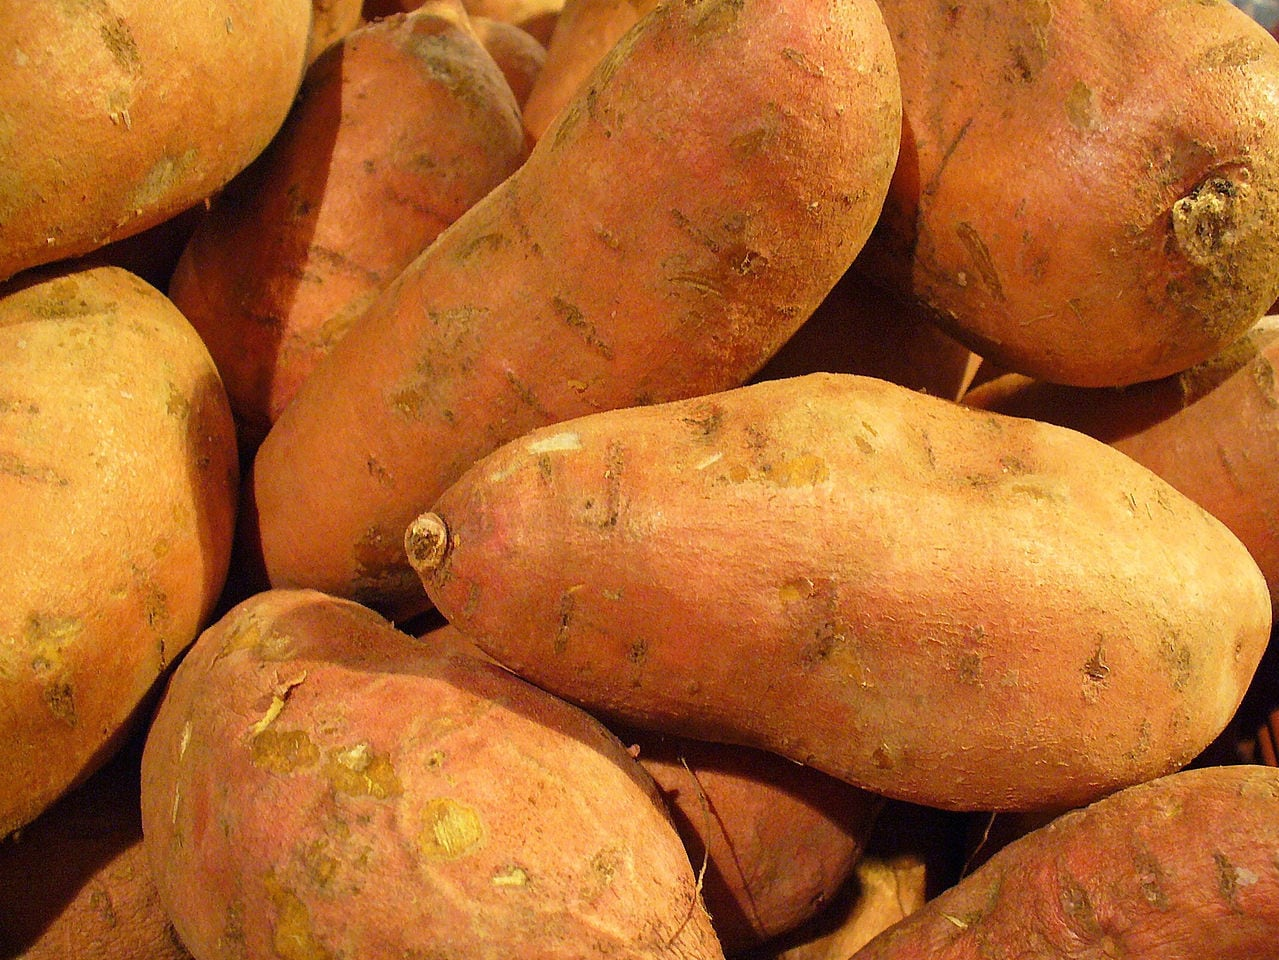 Sweet potatoes can be a sweet and healthy part of a holiday meal